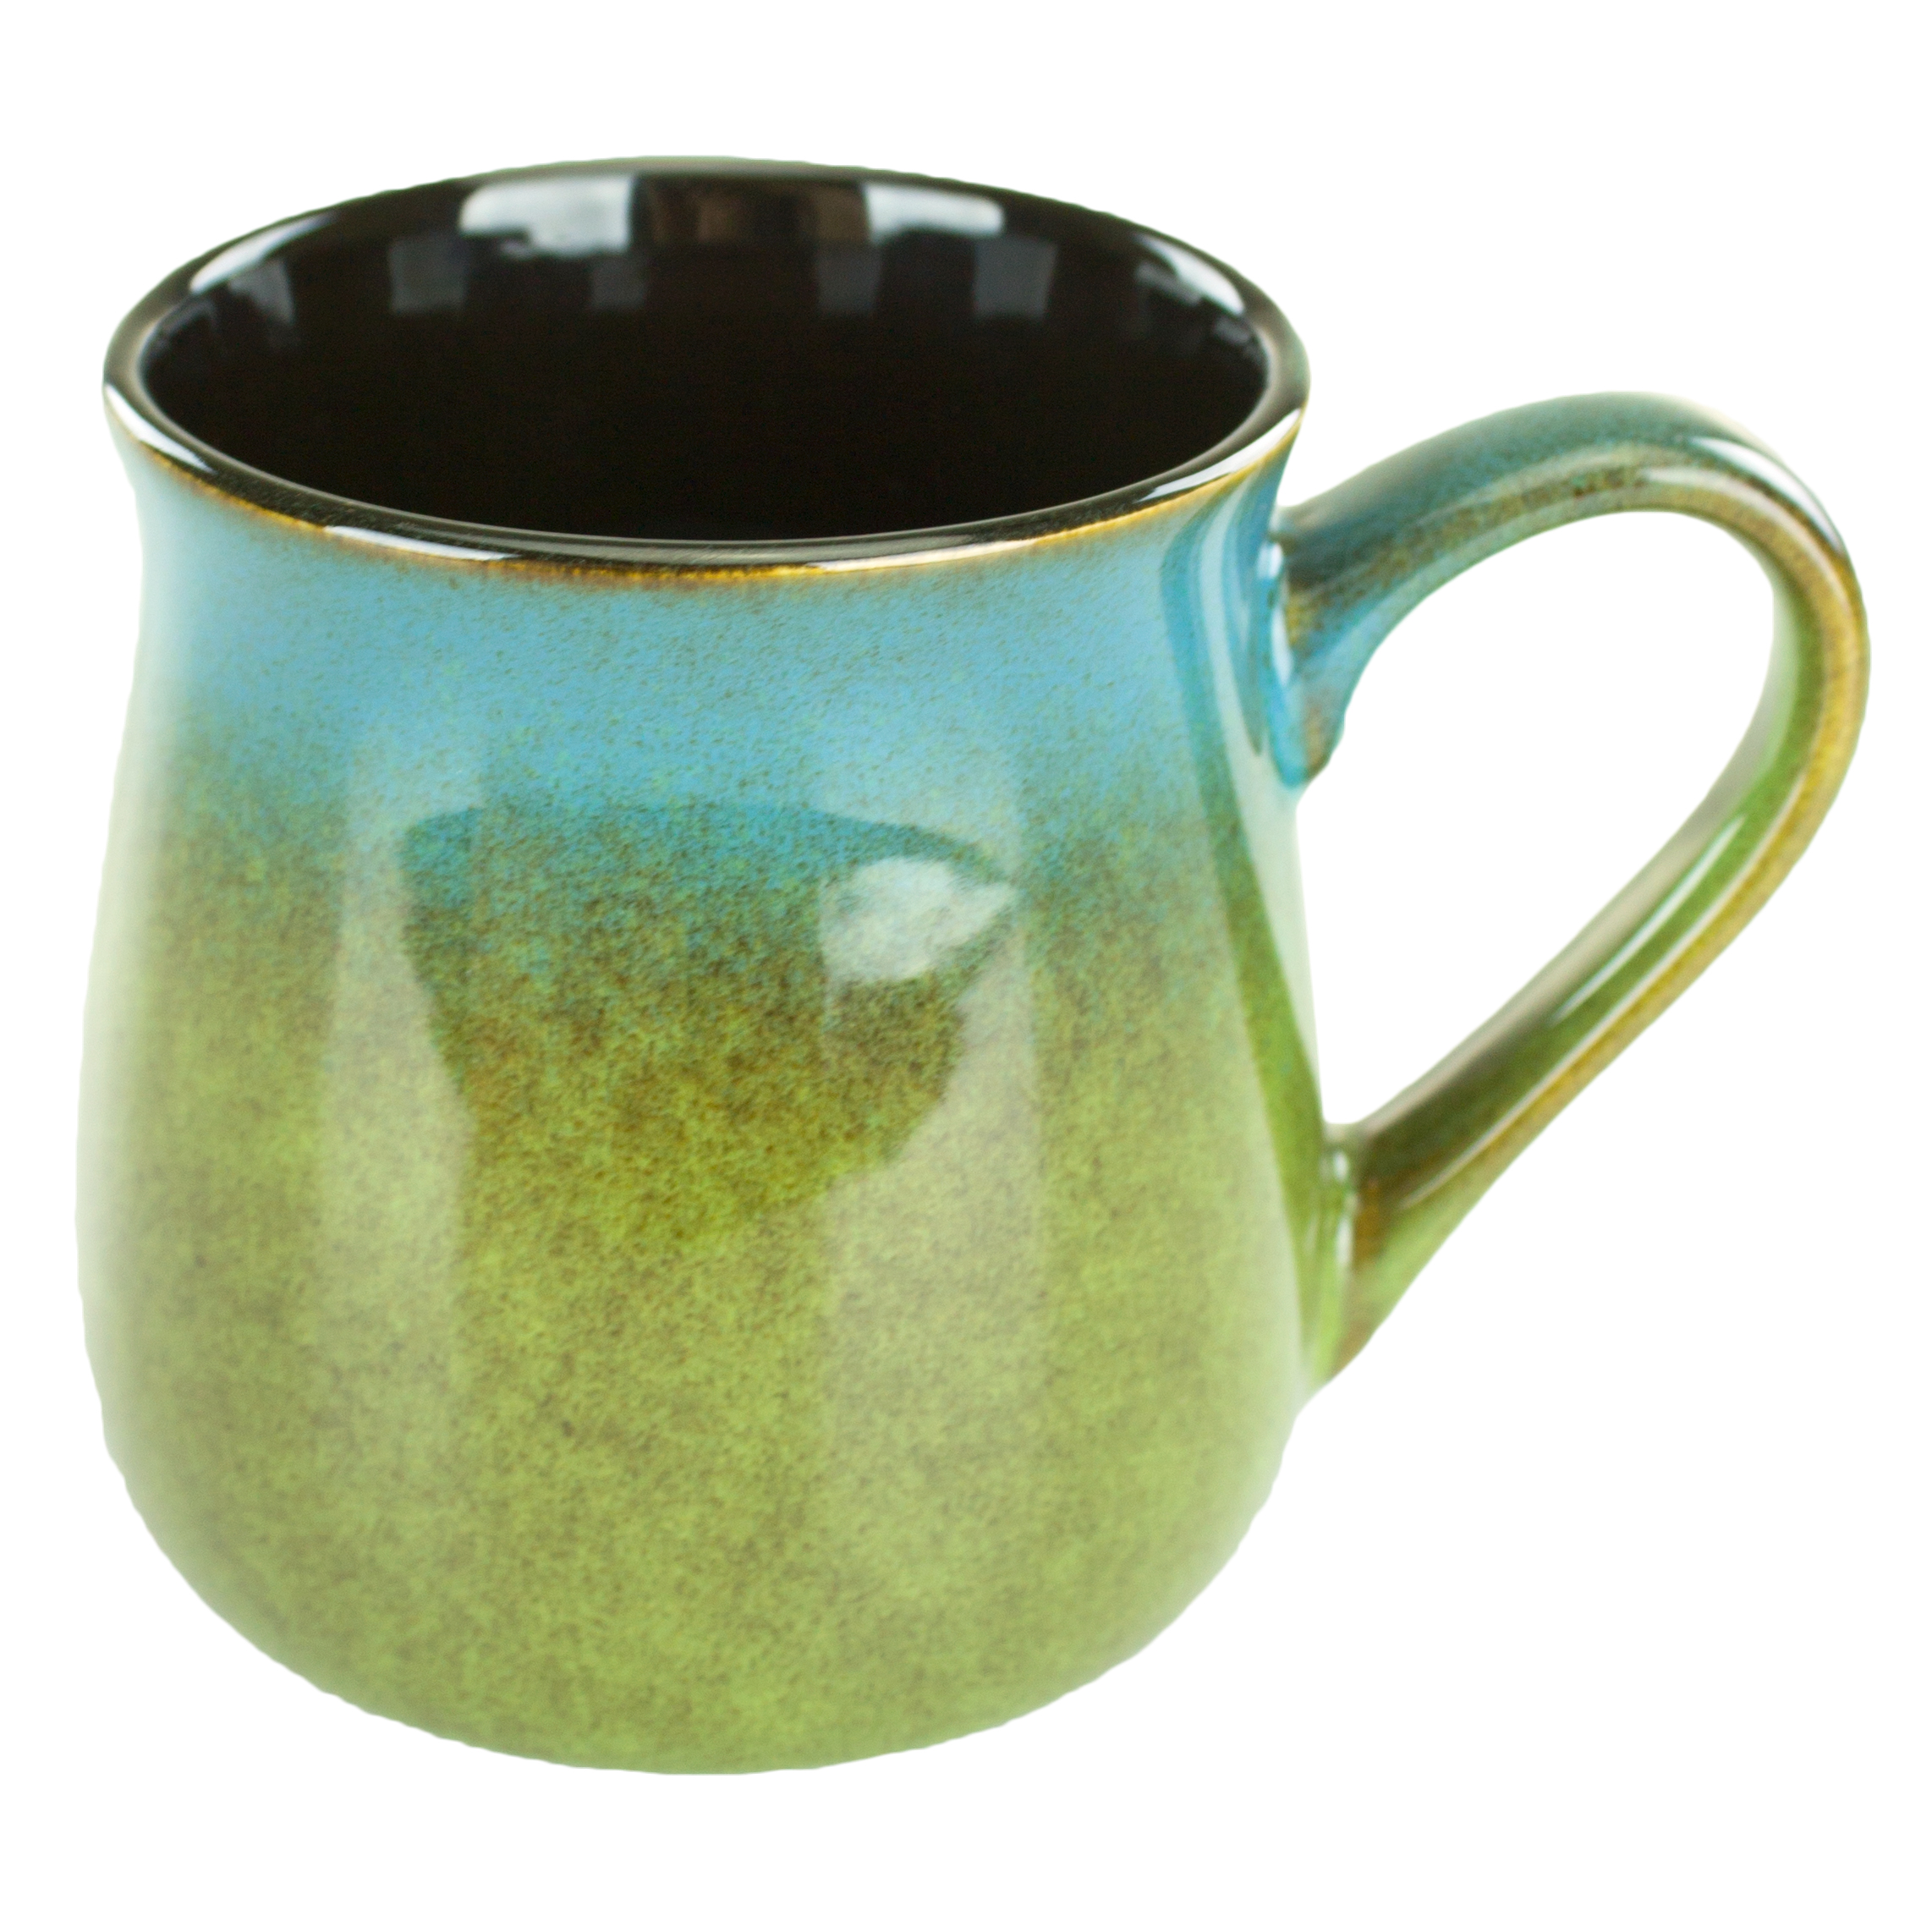 International Tableware 4416-146 mug, china